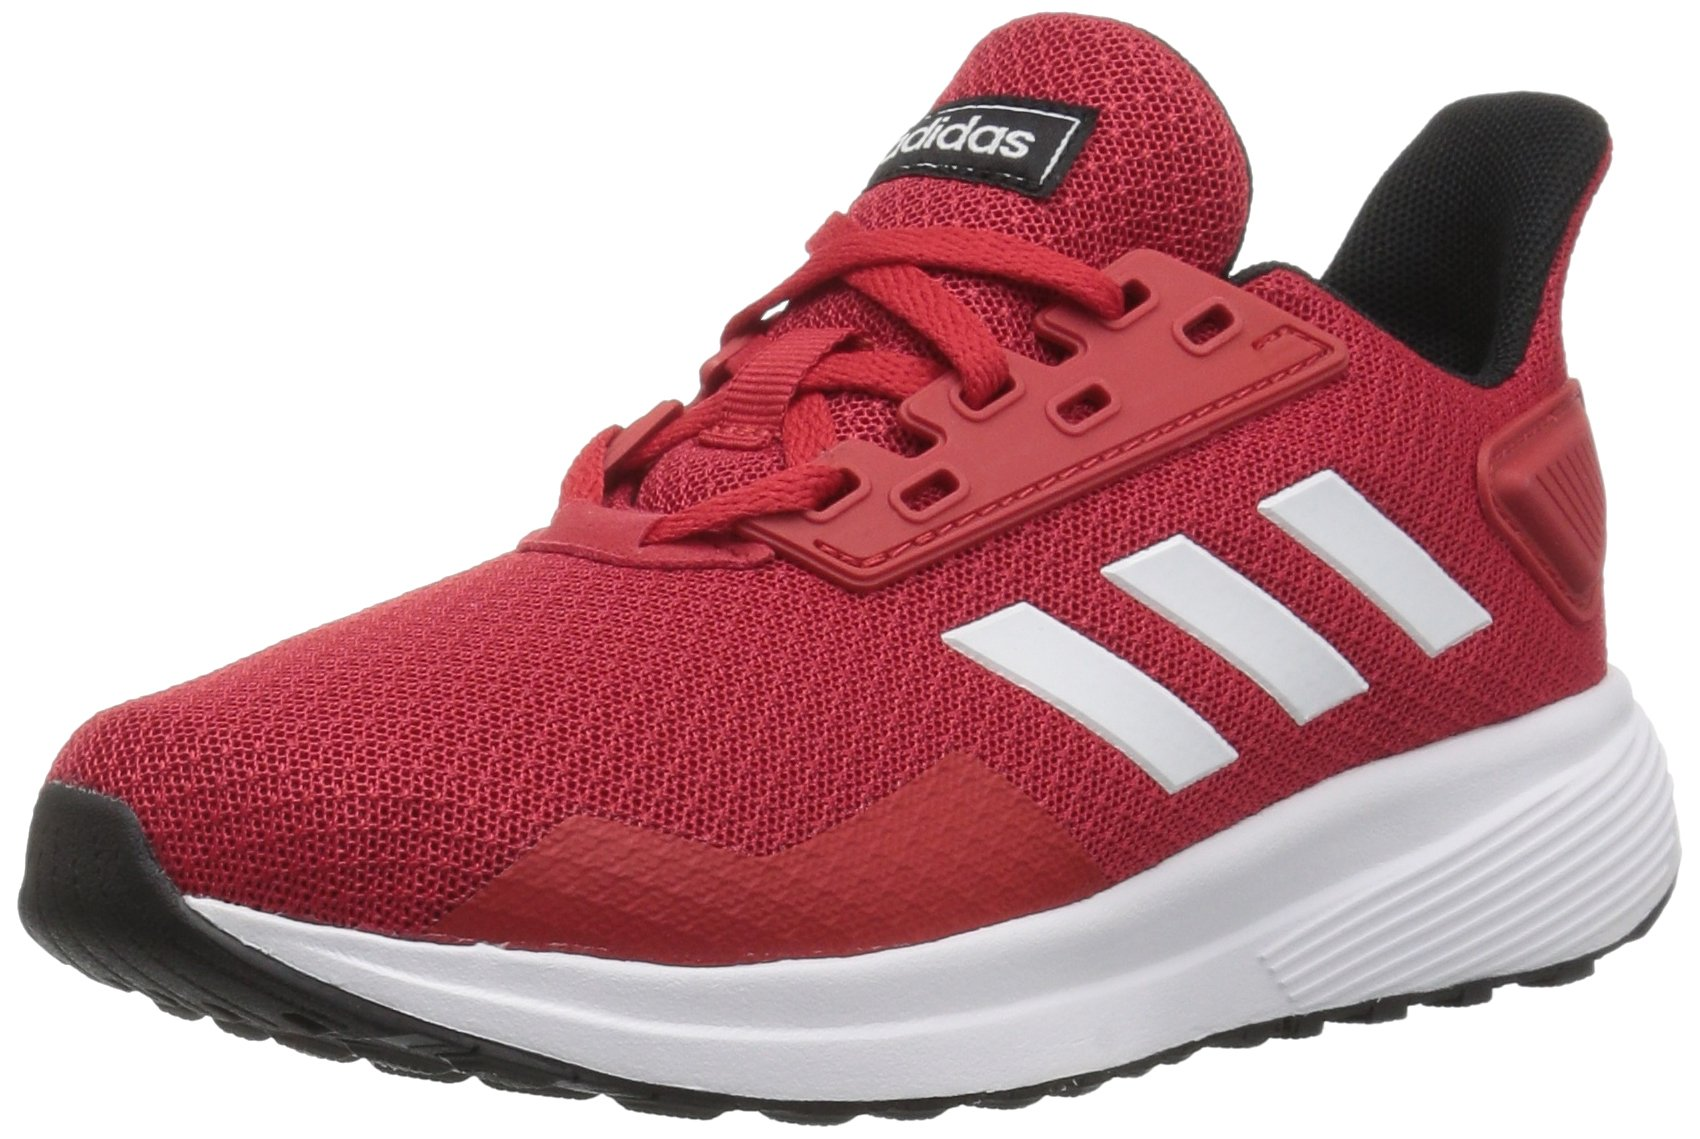 adidas Unisex-Kid's Duramo 9 Running Shoe, Scarlet/White/Black, 1.5 by adidas